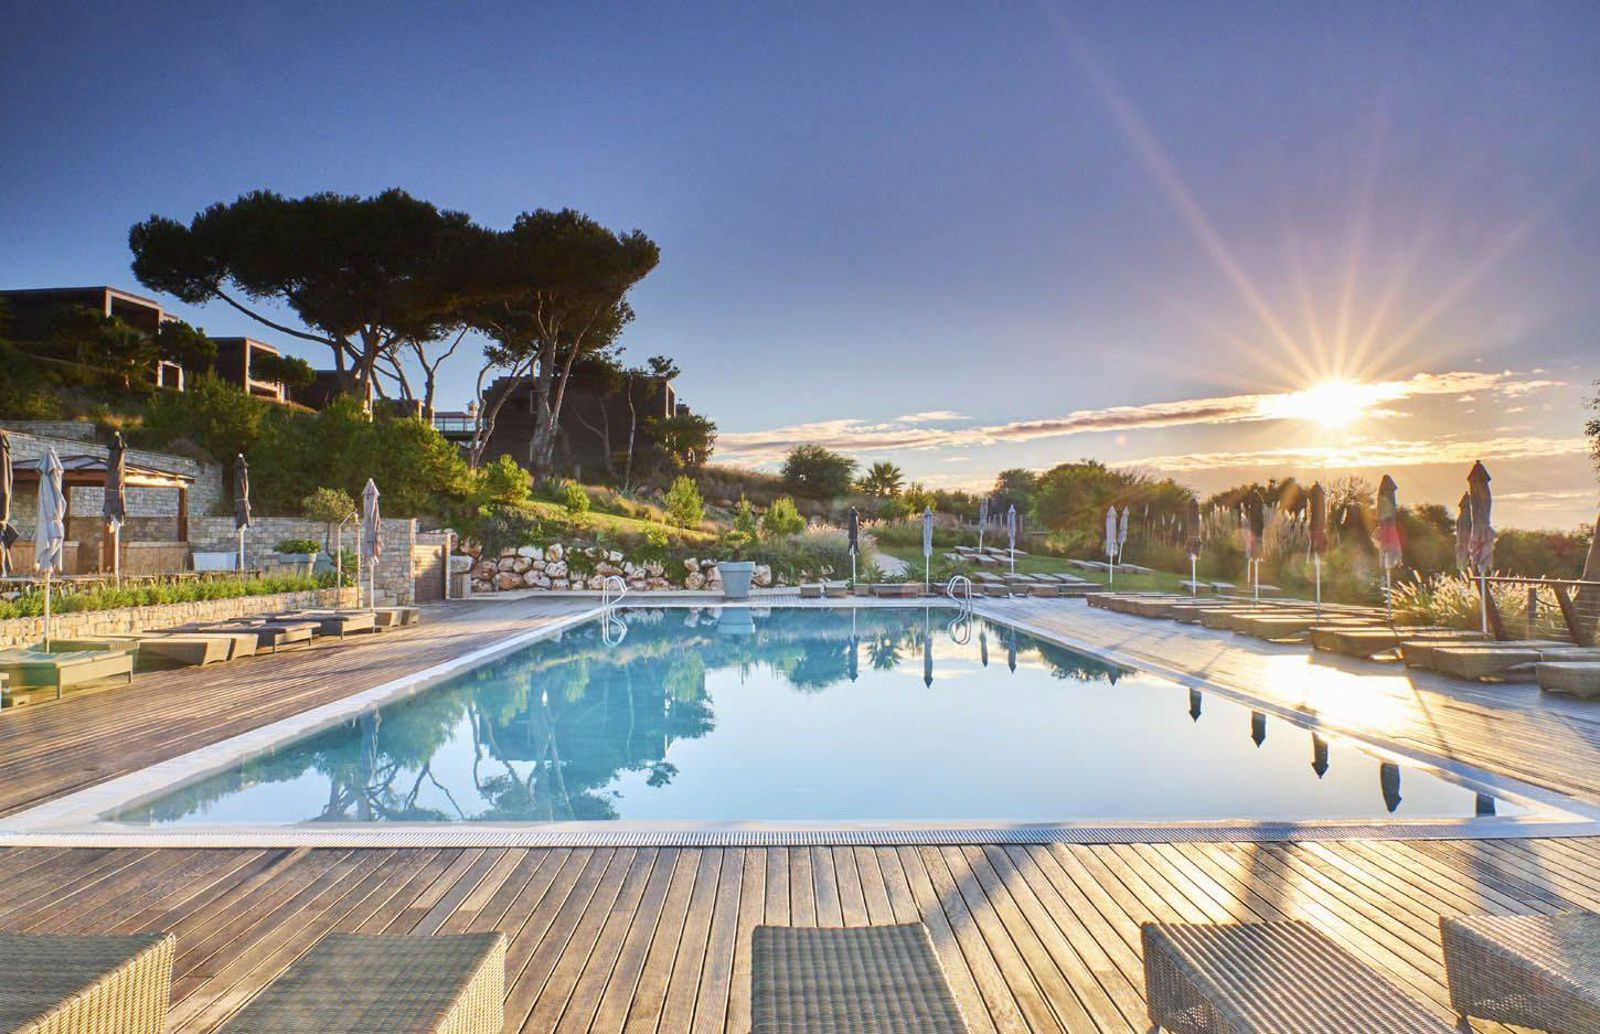 11 best hotels for a beach holiday in Portugal via The